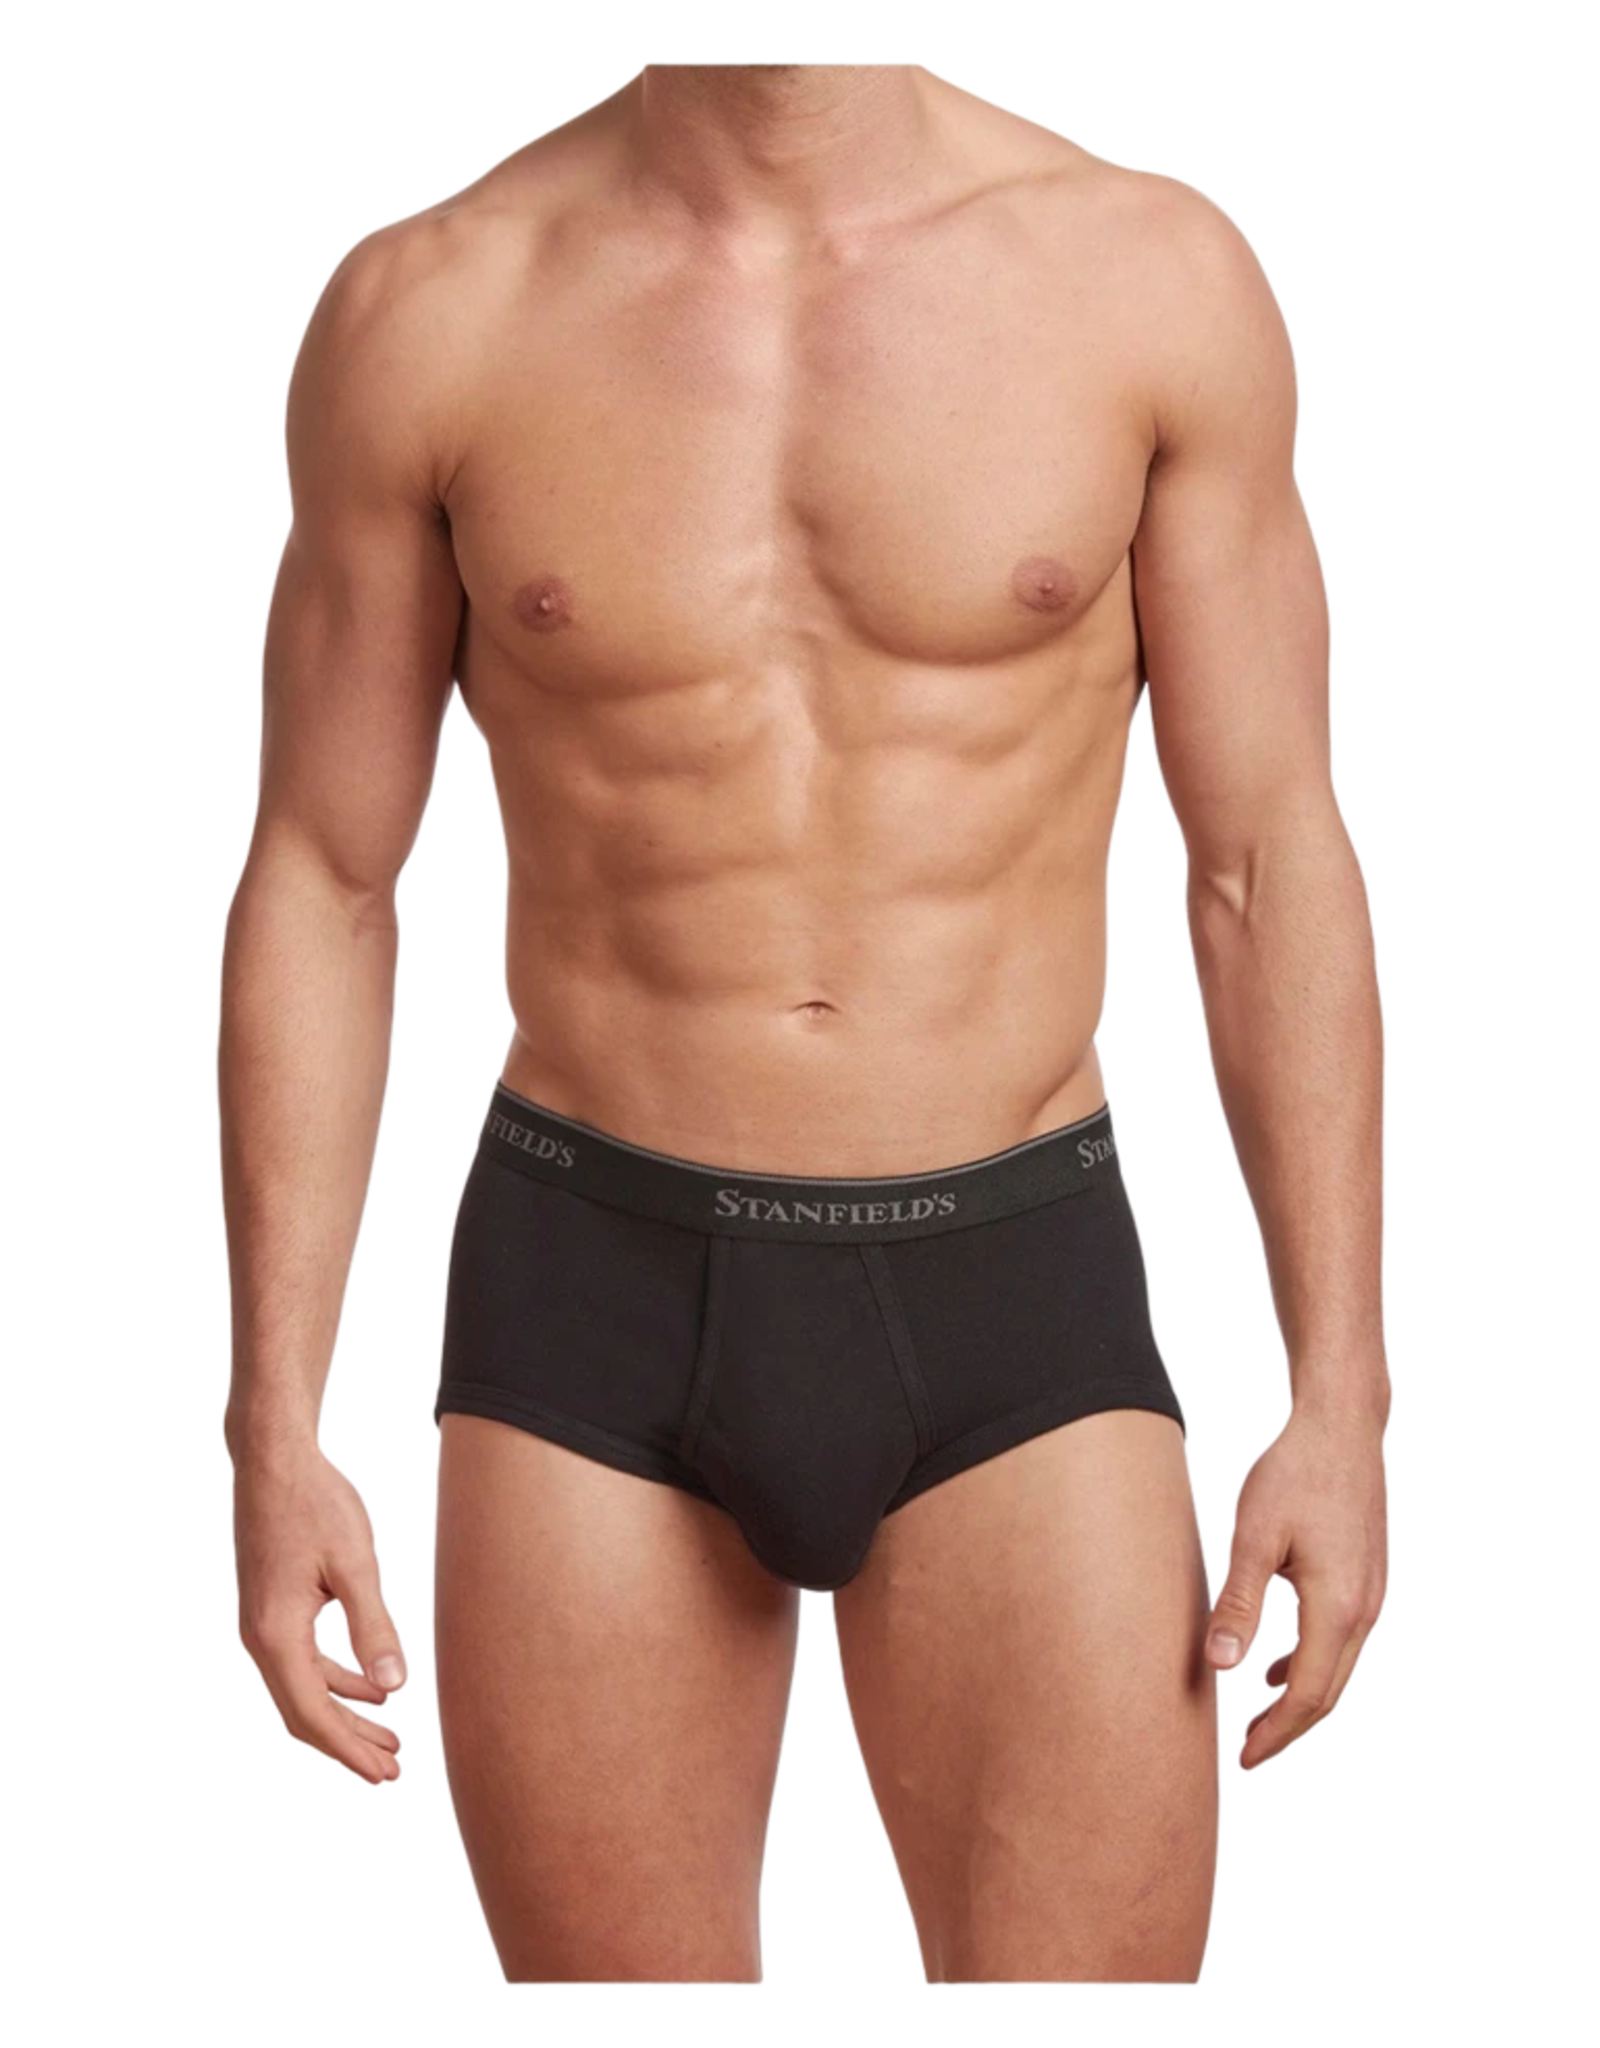 Stanfields Stanfields 2503 3-Pack Brief - 3 Colors